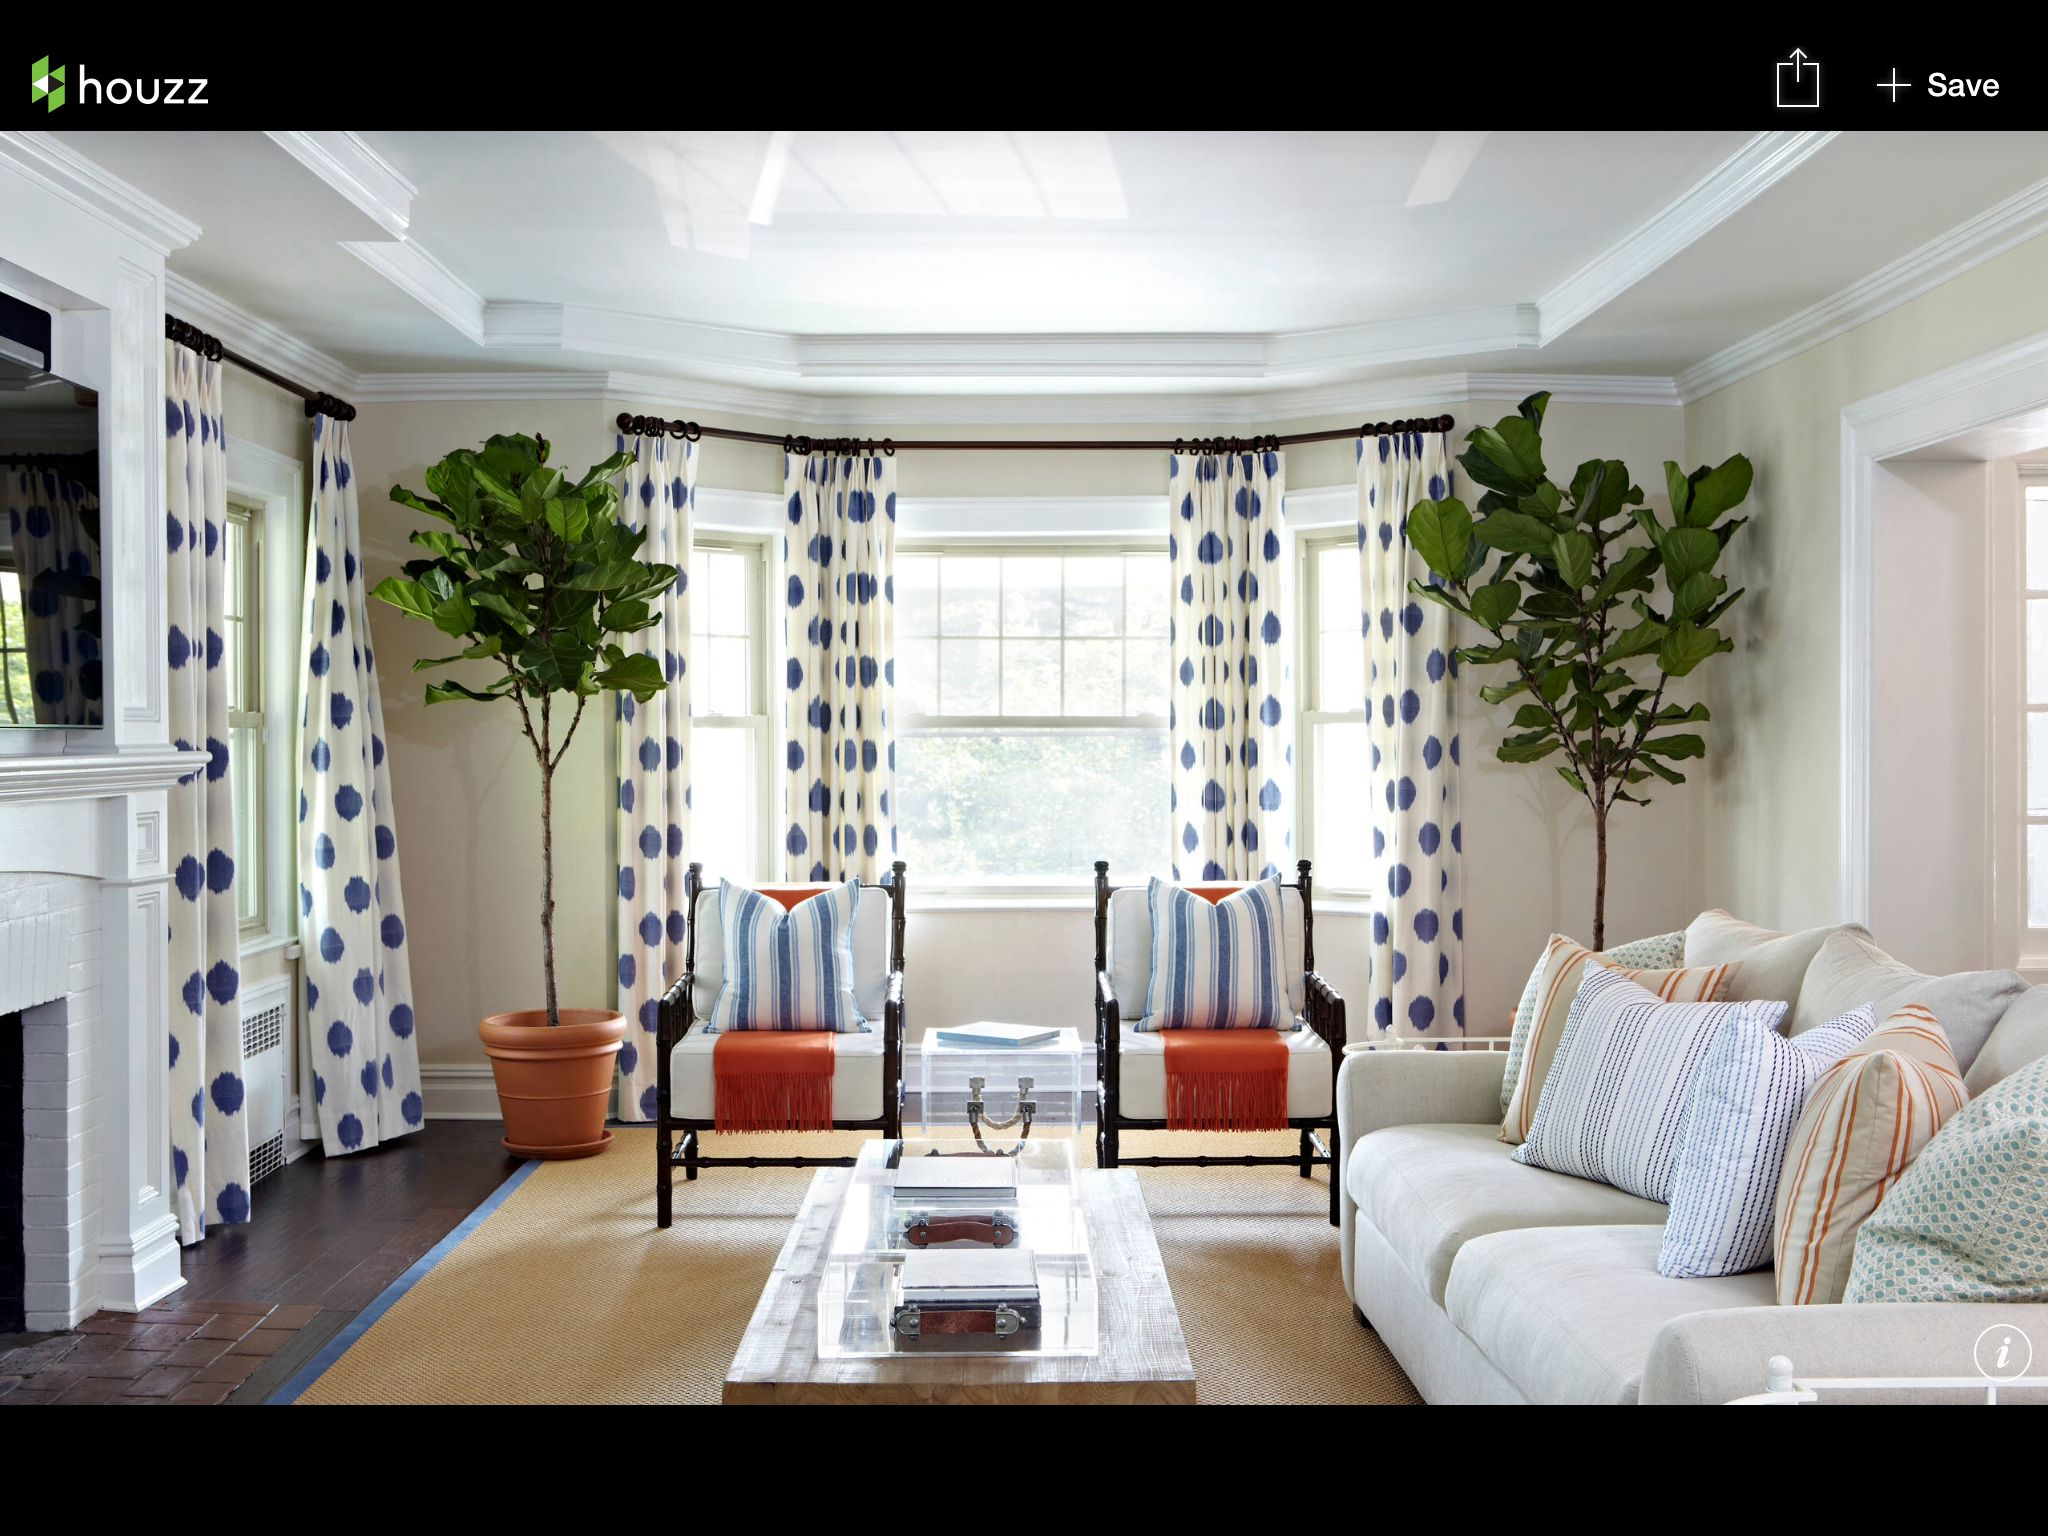 Living Room Design Houzz Interesting Living Room Inspiration From Houzz  House Inspiration  Pinterest Review